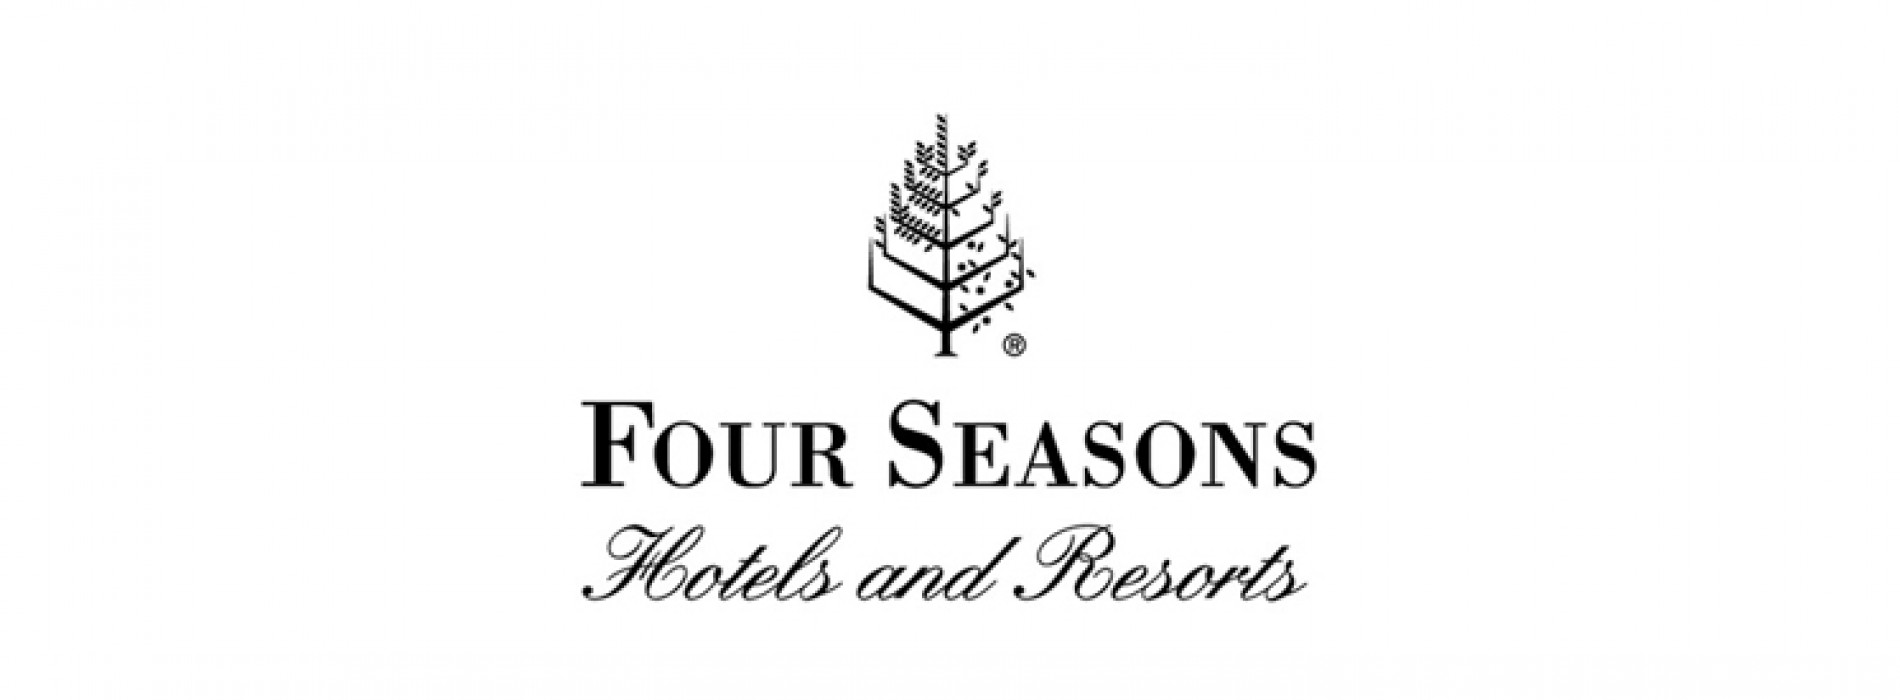 Four Seasons launches new app for Chinese travellers